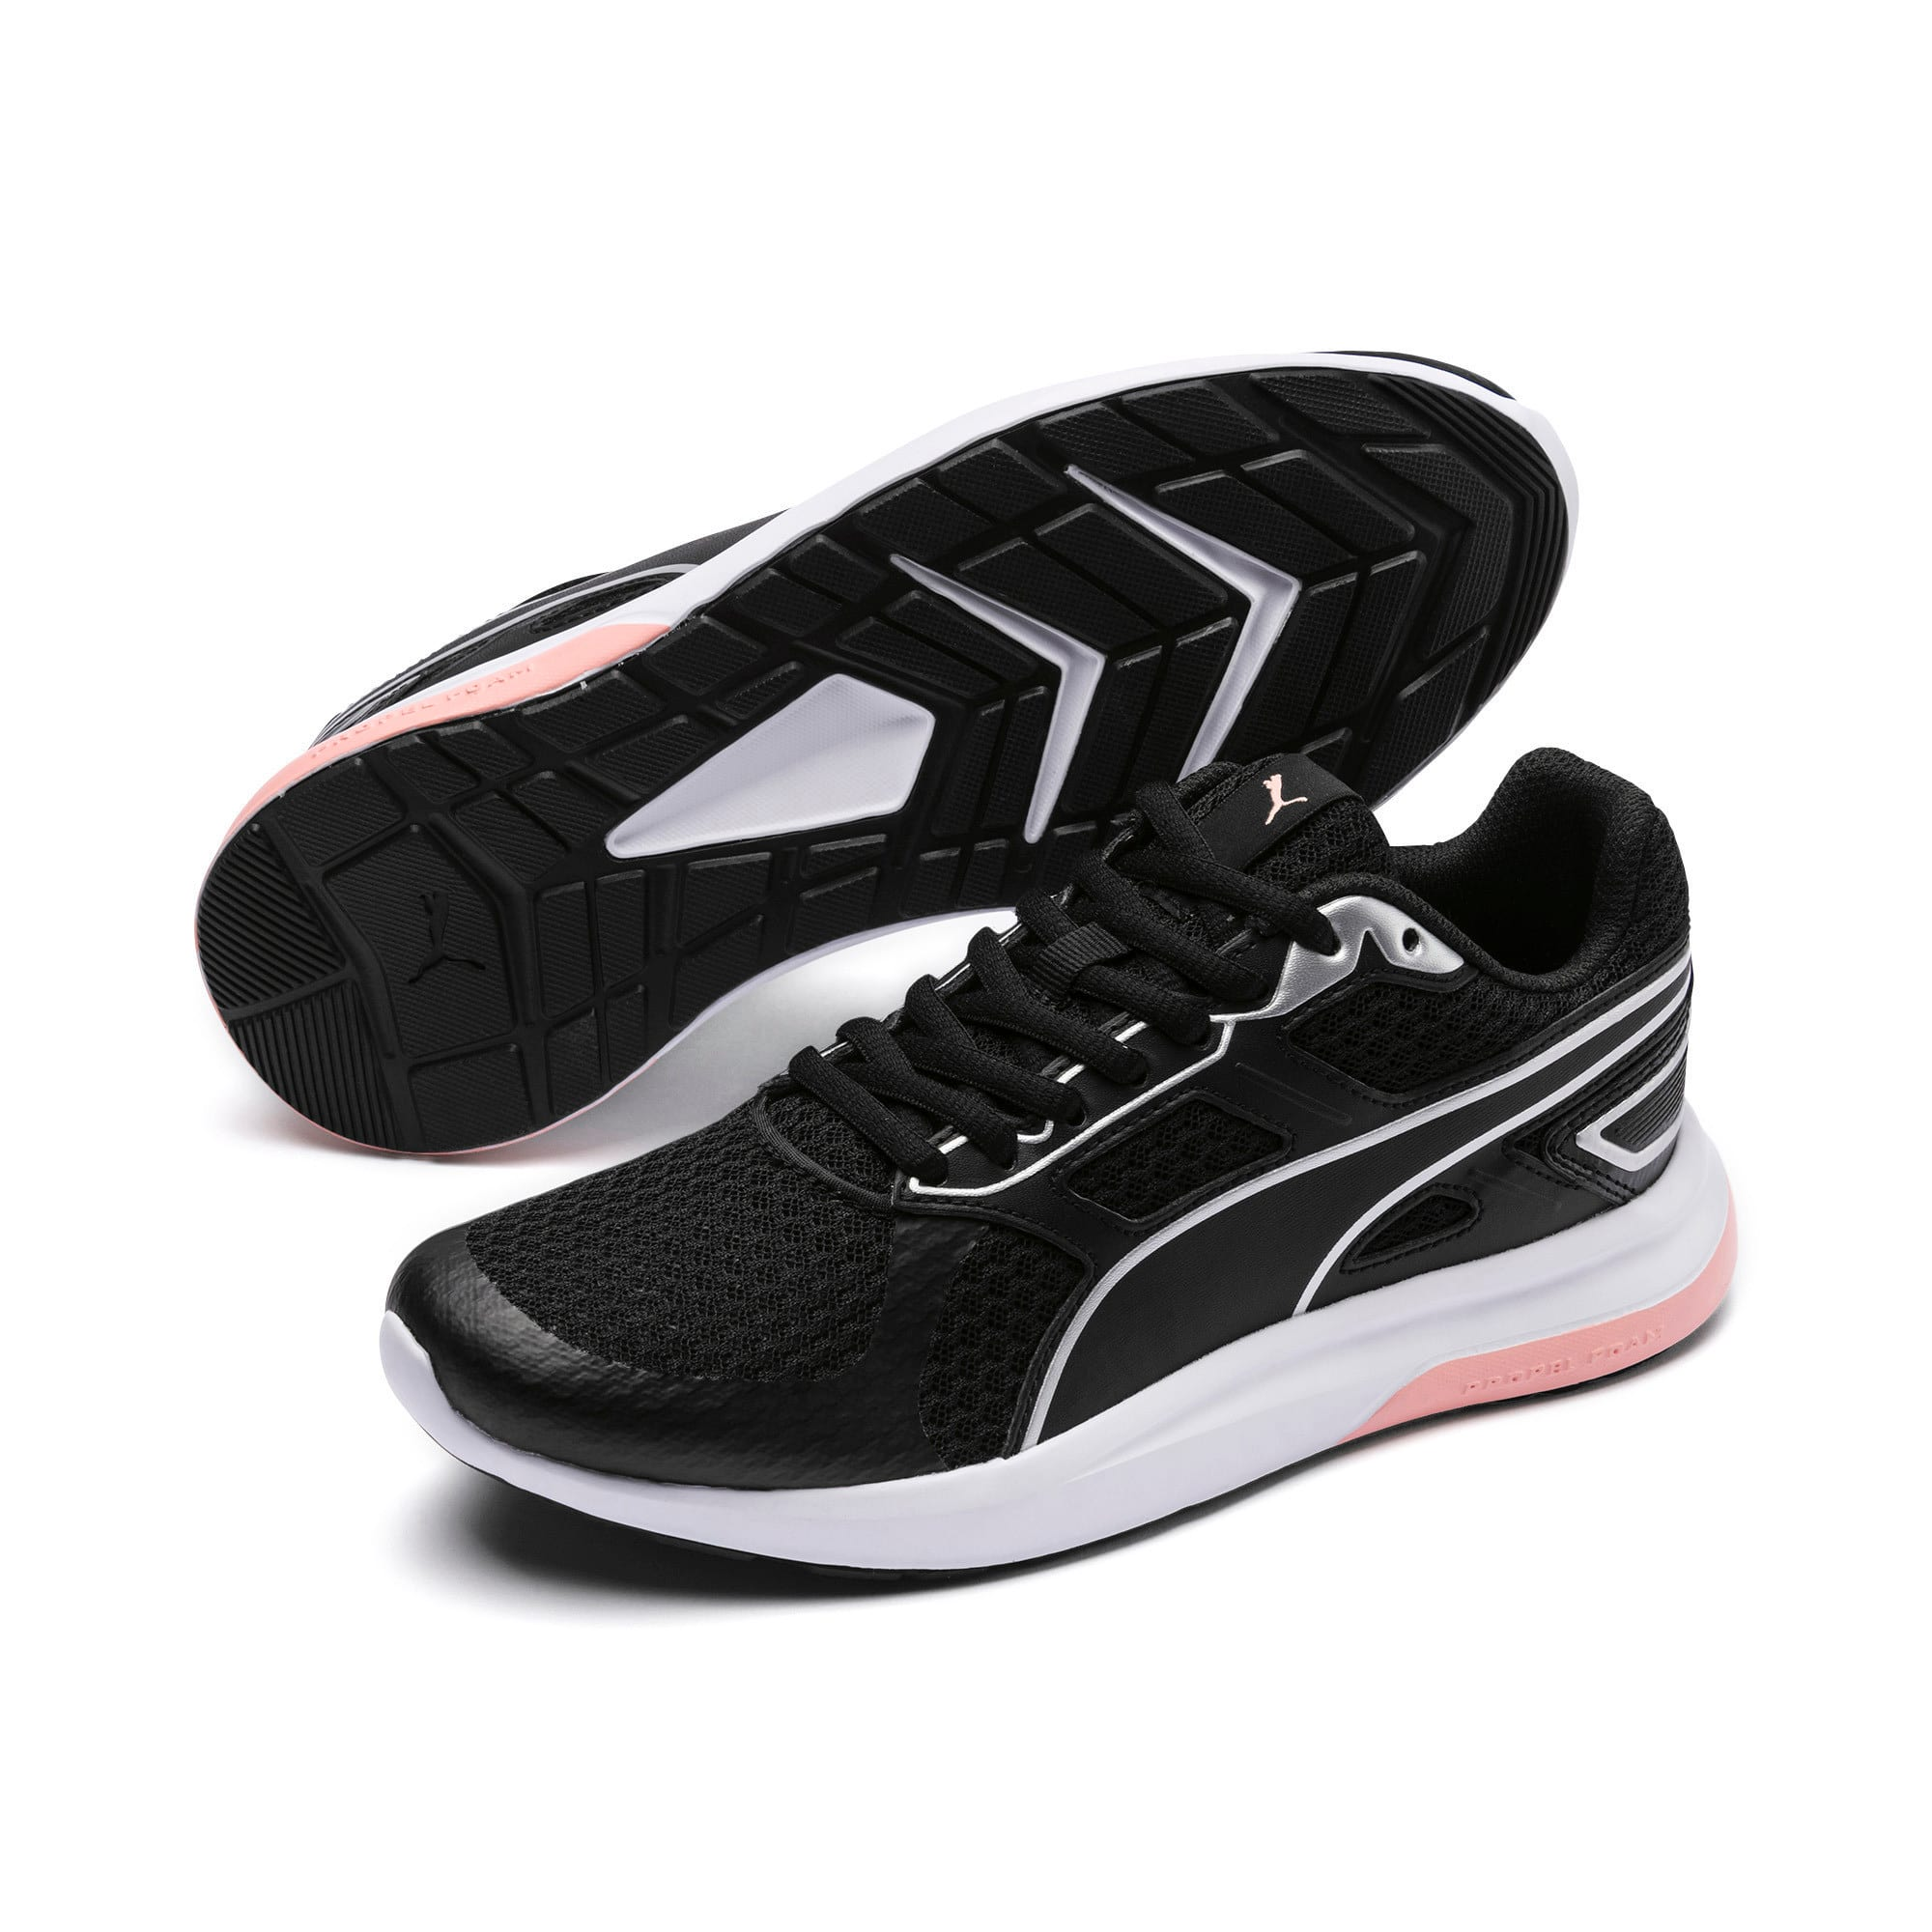 Thumbnail 2 of Escaper Tech Sneakers, Black-Silver-White-Peach Bud, medium-IND